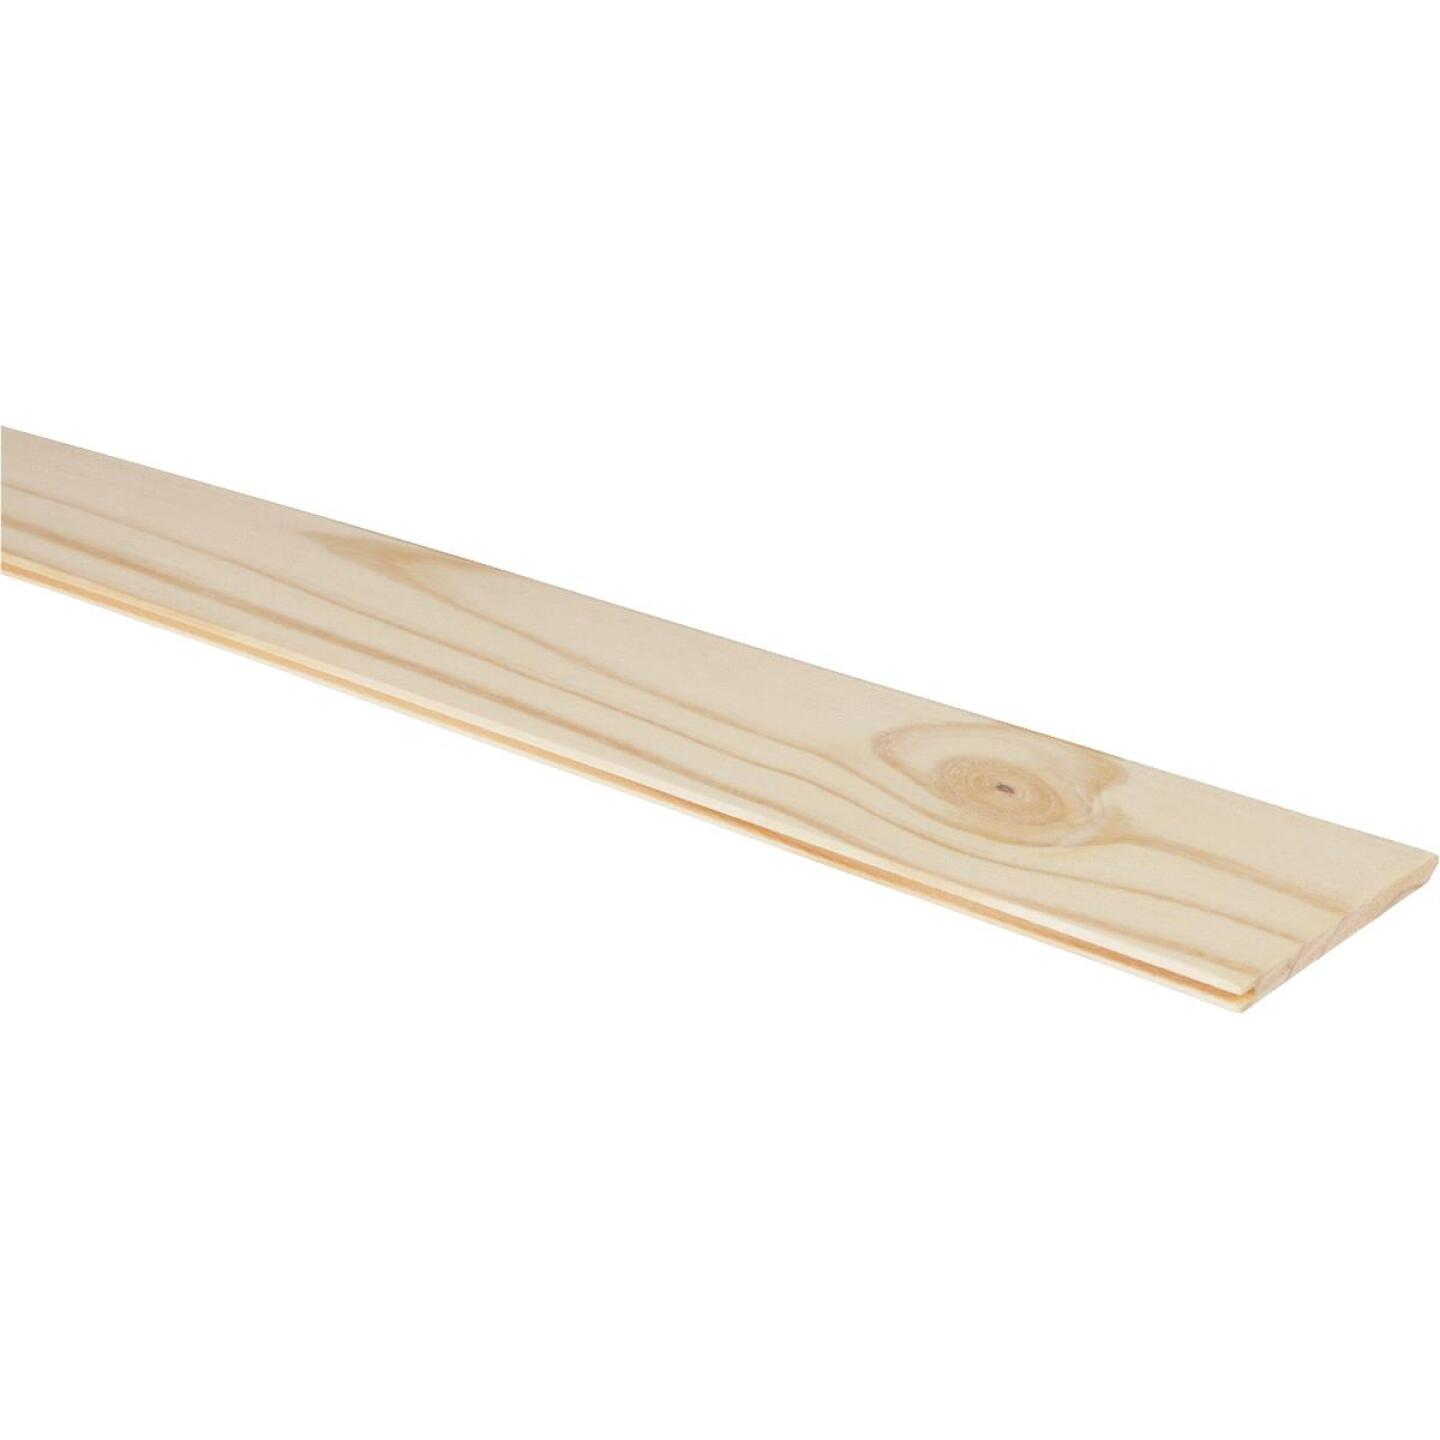 DPI 3-1/2 In. W. x 8 Ft. L. x 5/16 In. Thick Pine V-Edge Wall Plank (6-Pack) Image 1